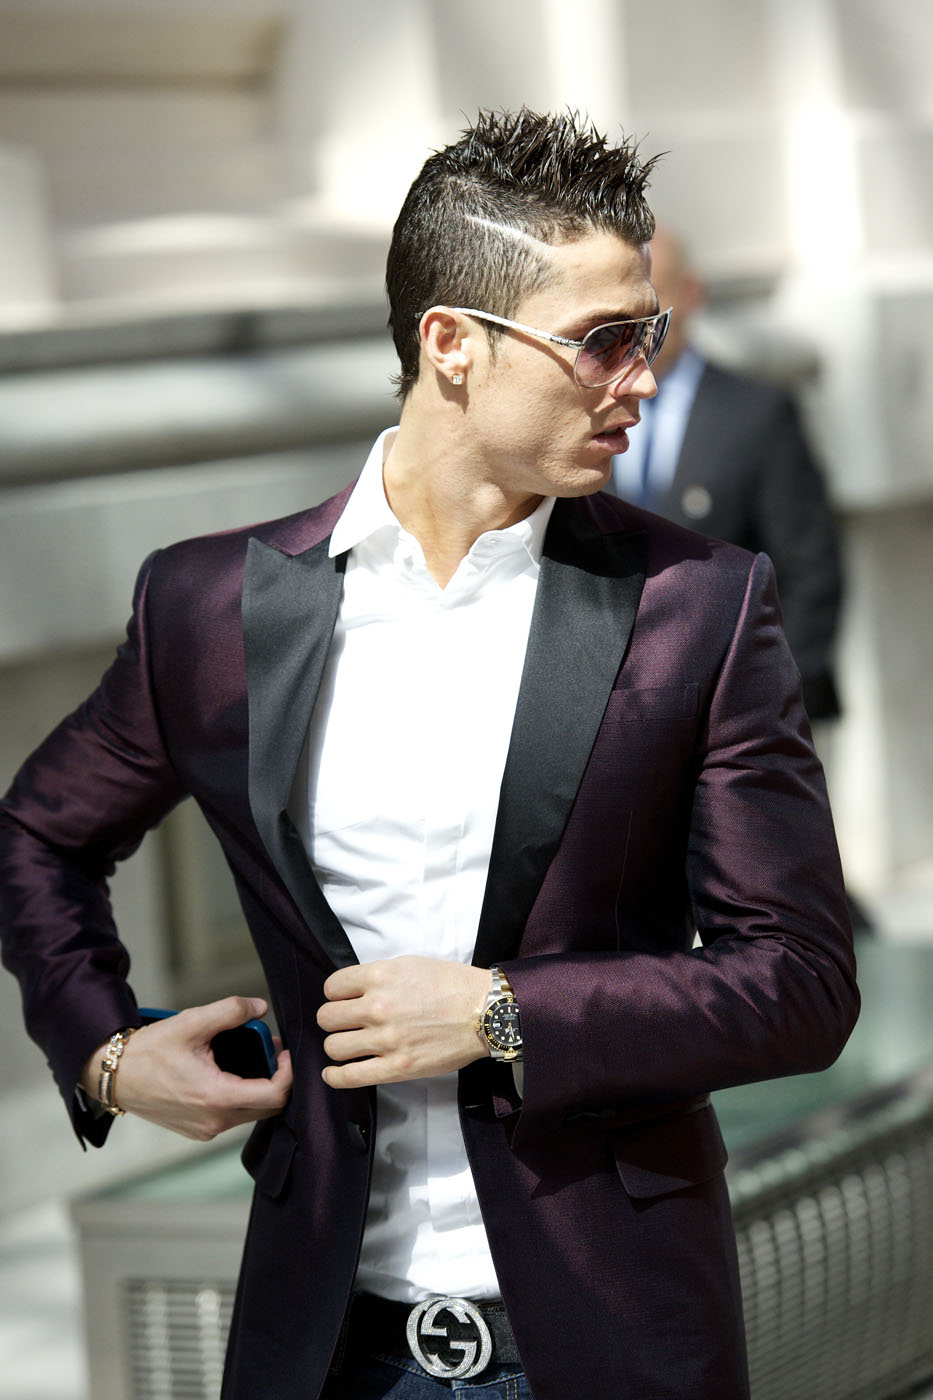 Cristiano Ronaldo Fashion And Hairstyles In 21 Pictures